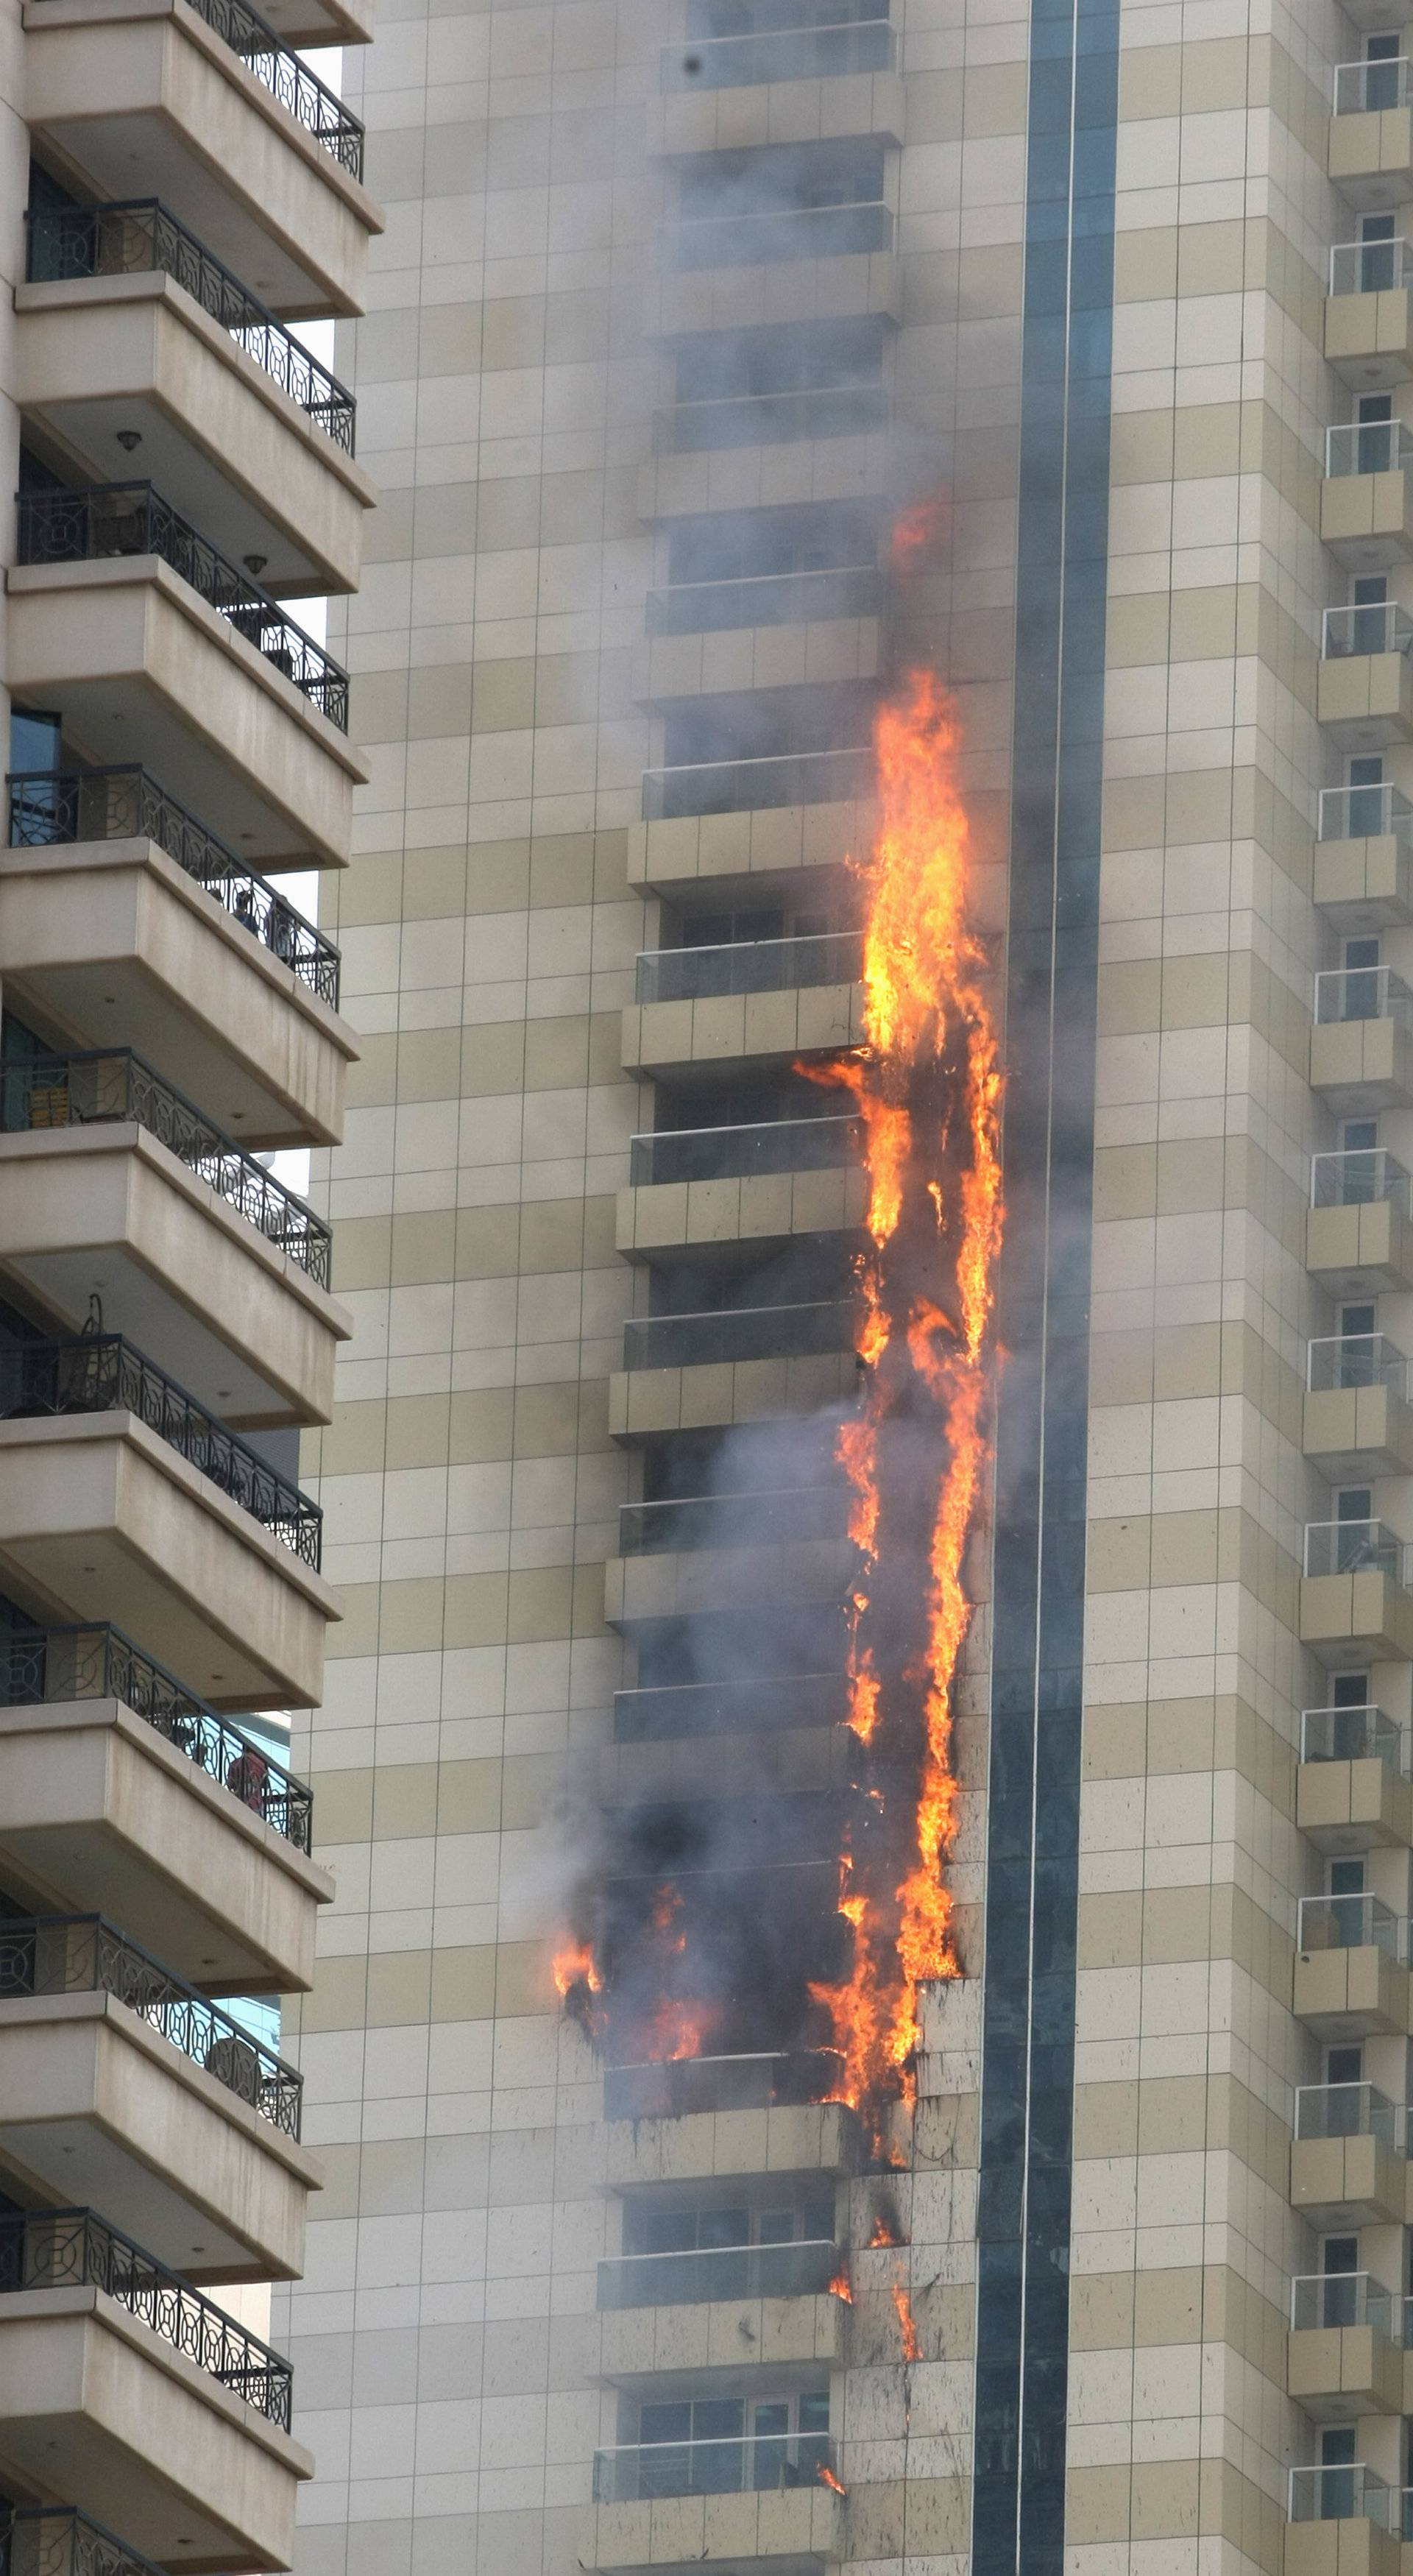 Flames are seeen after a fire broke out at residential Sulafa tower in the upscale Marina district in Dubai